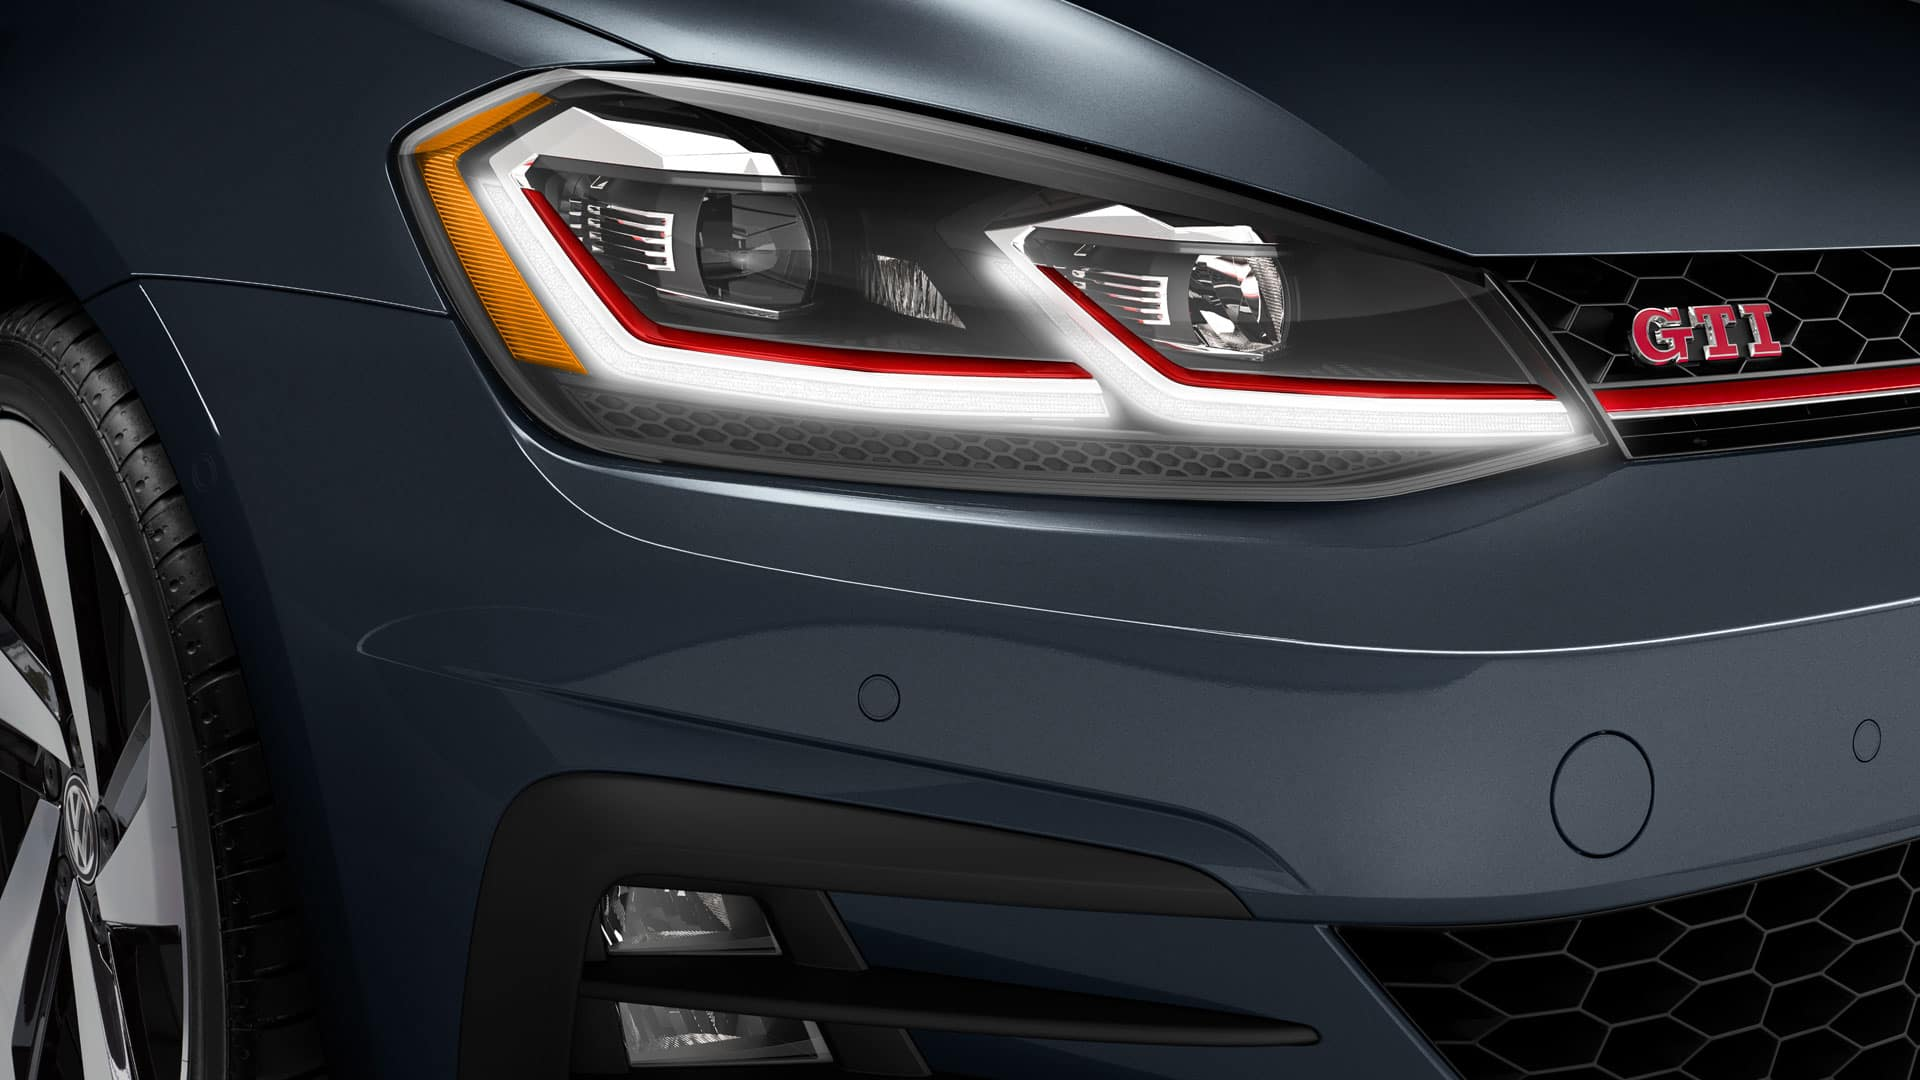 2019 VW Golf GTI LED headlights